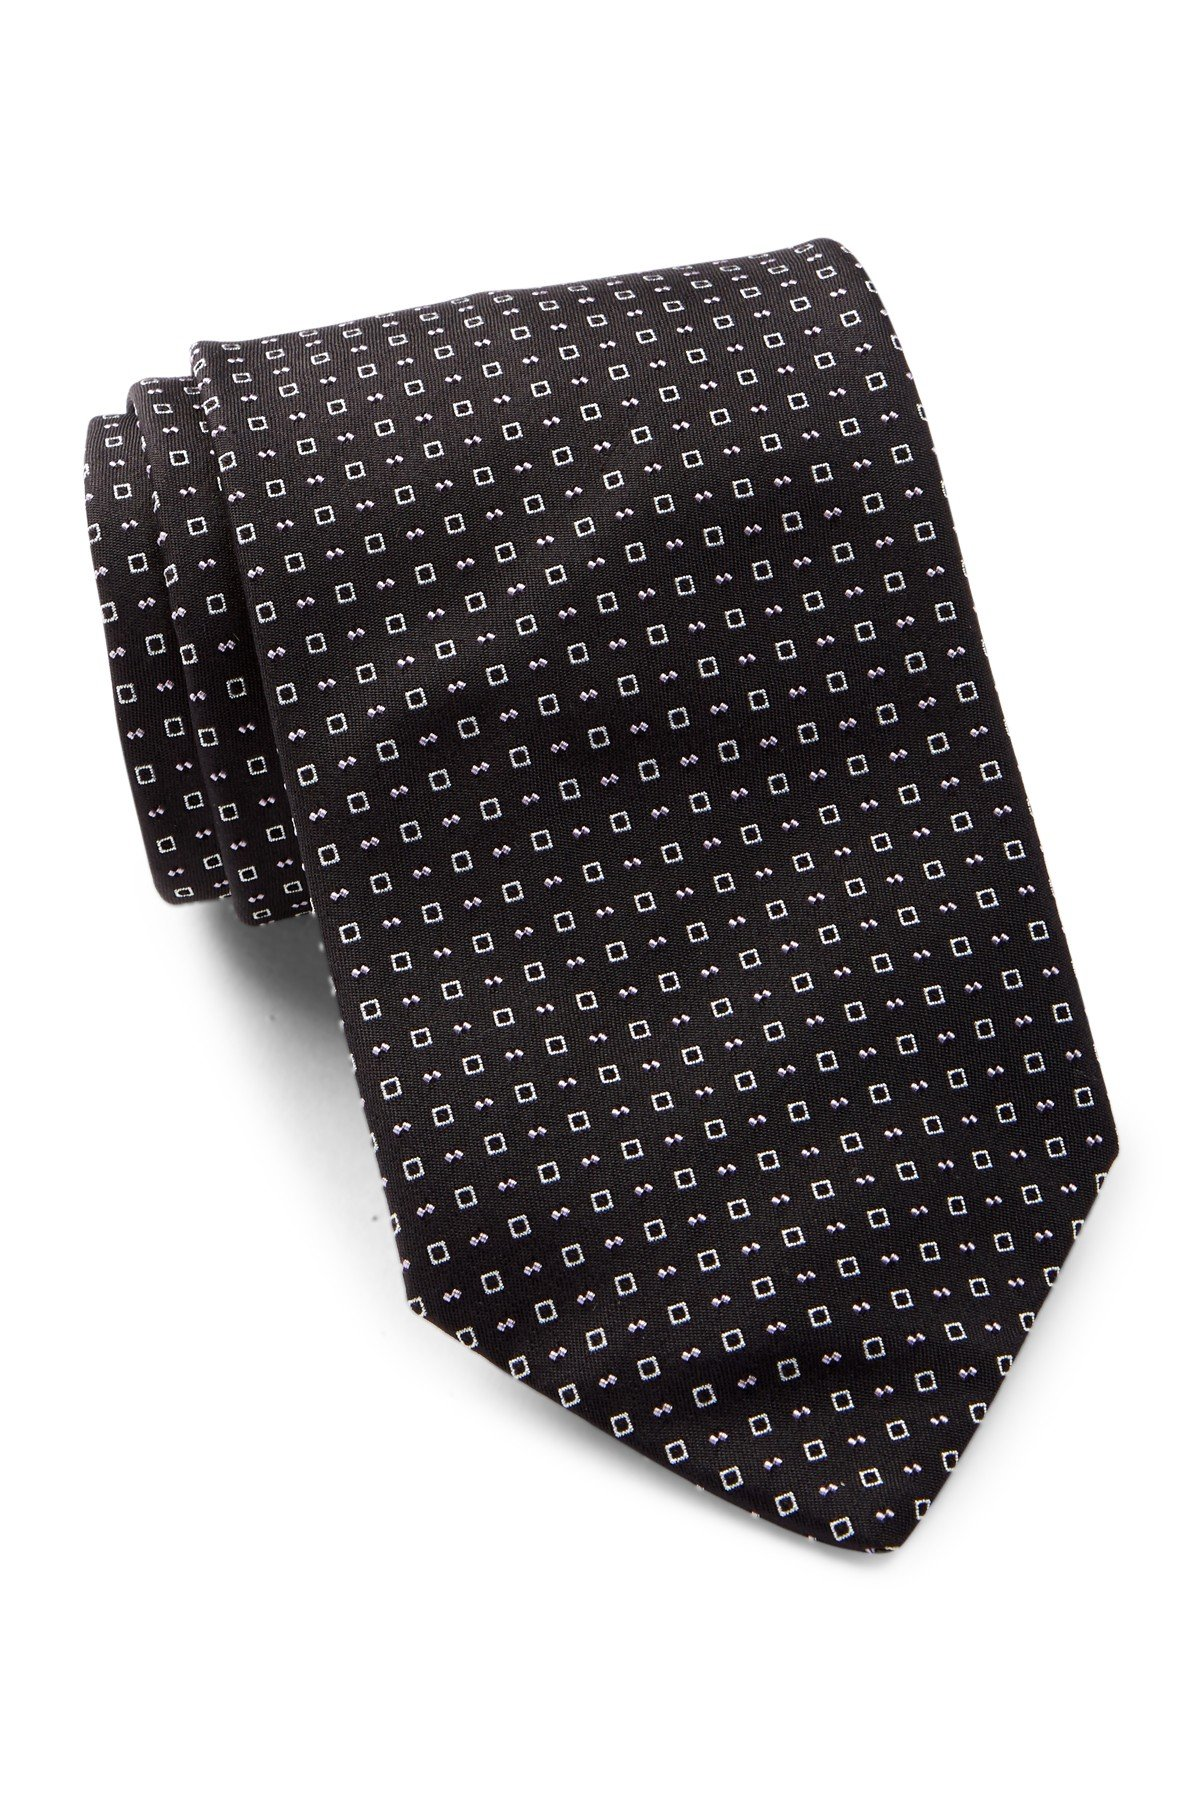 Hugo Boss Men's Neat Square Print Italian Silk Tie, OS, Black